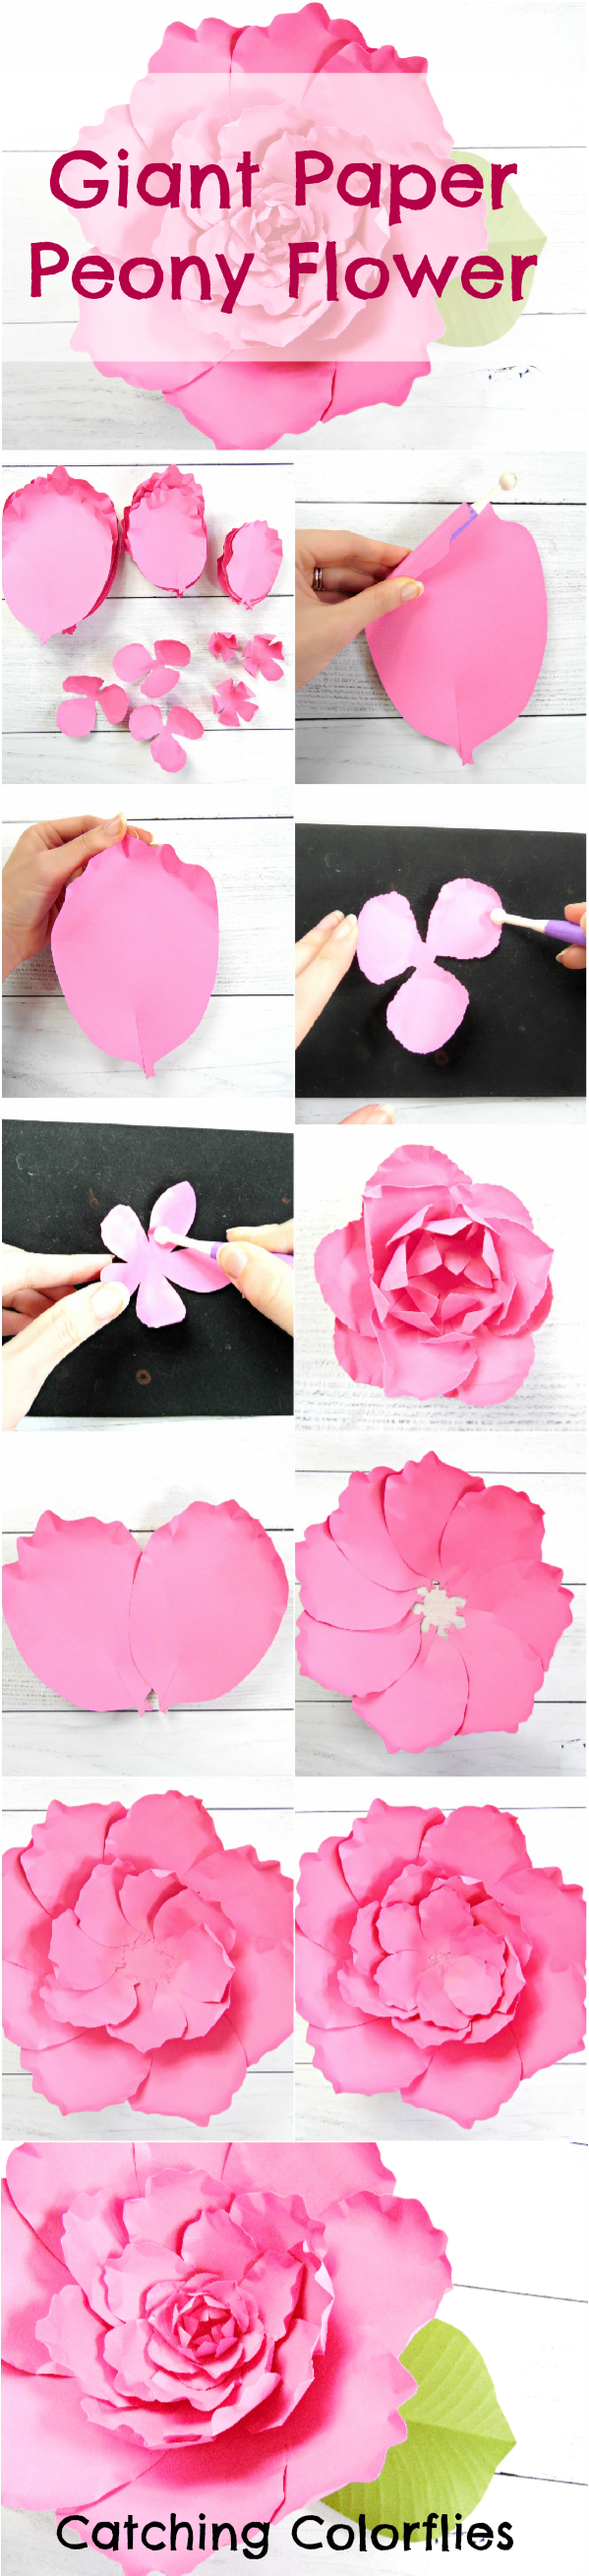 Giant Paper Flower Peony How to make large paper peony flowers